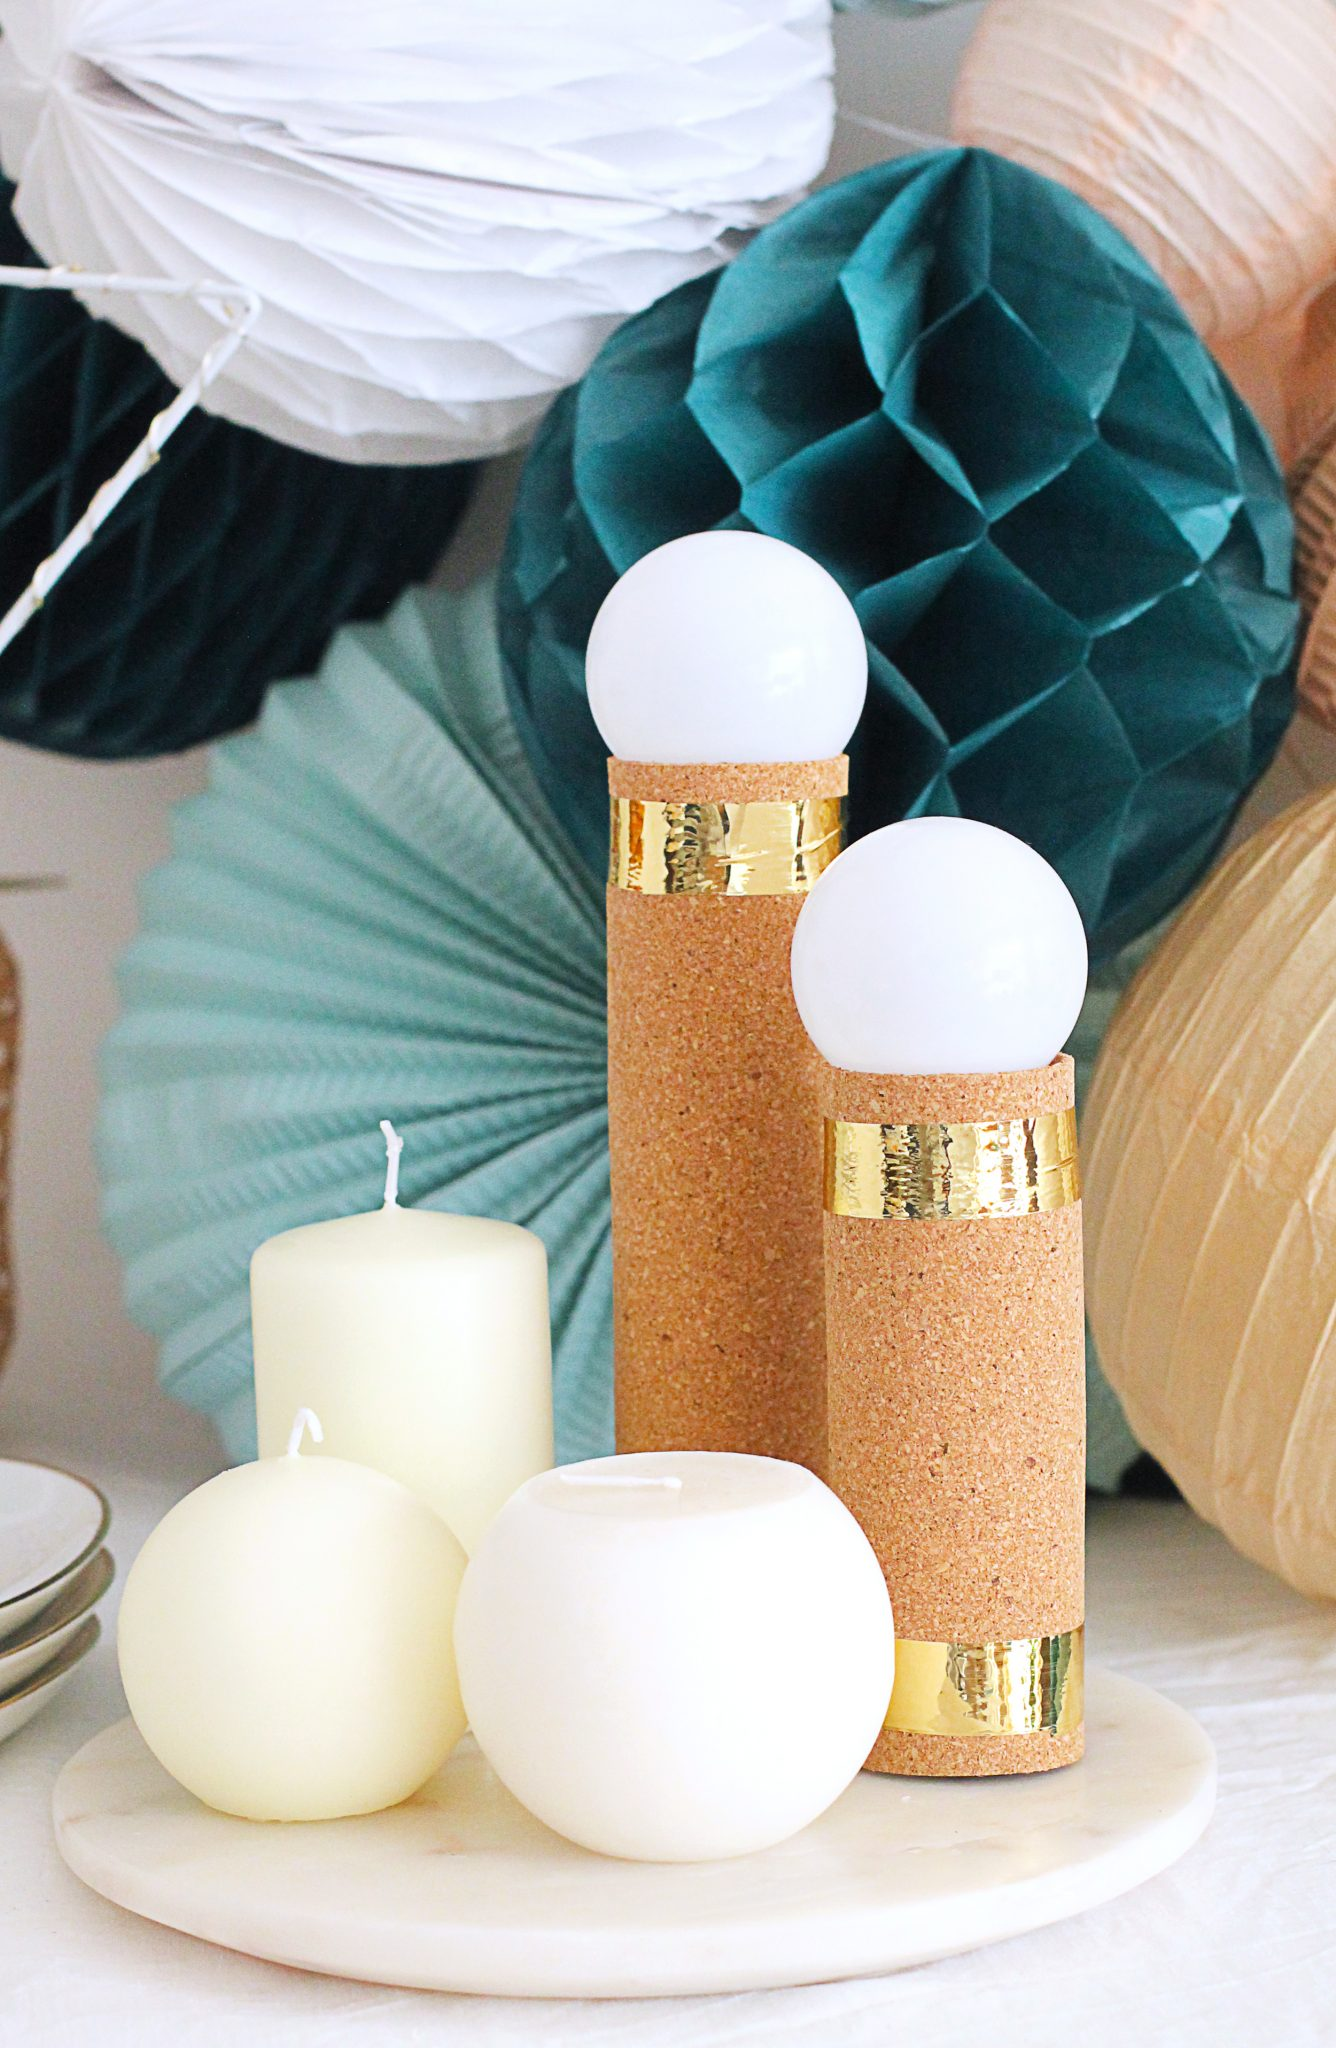 deco led ampoule liege tutoriel diy tuto